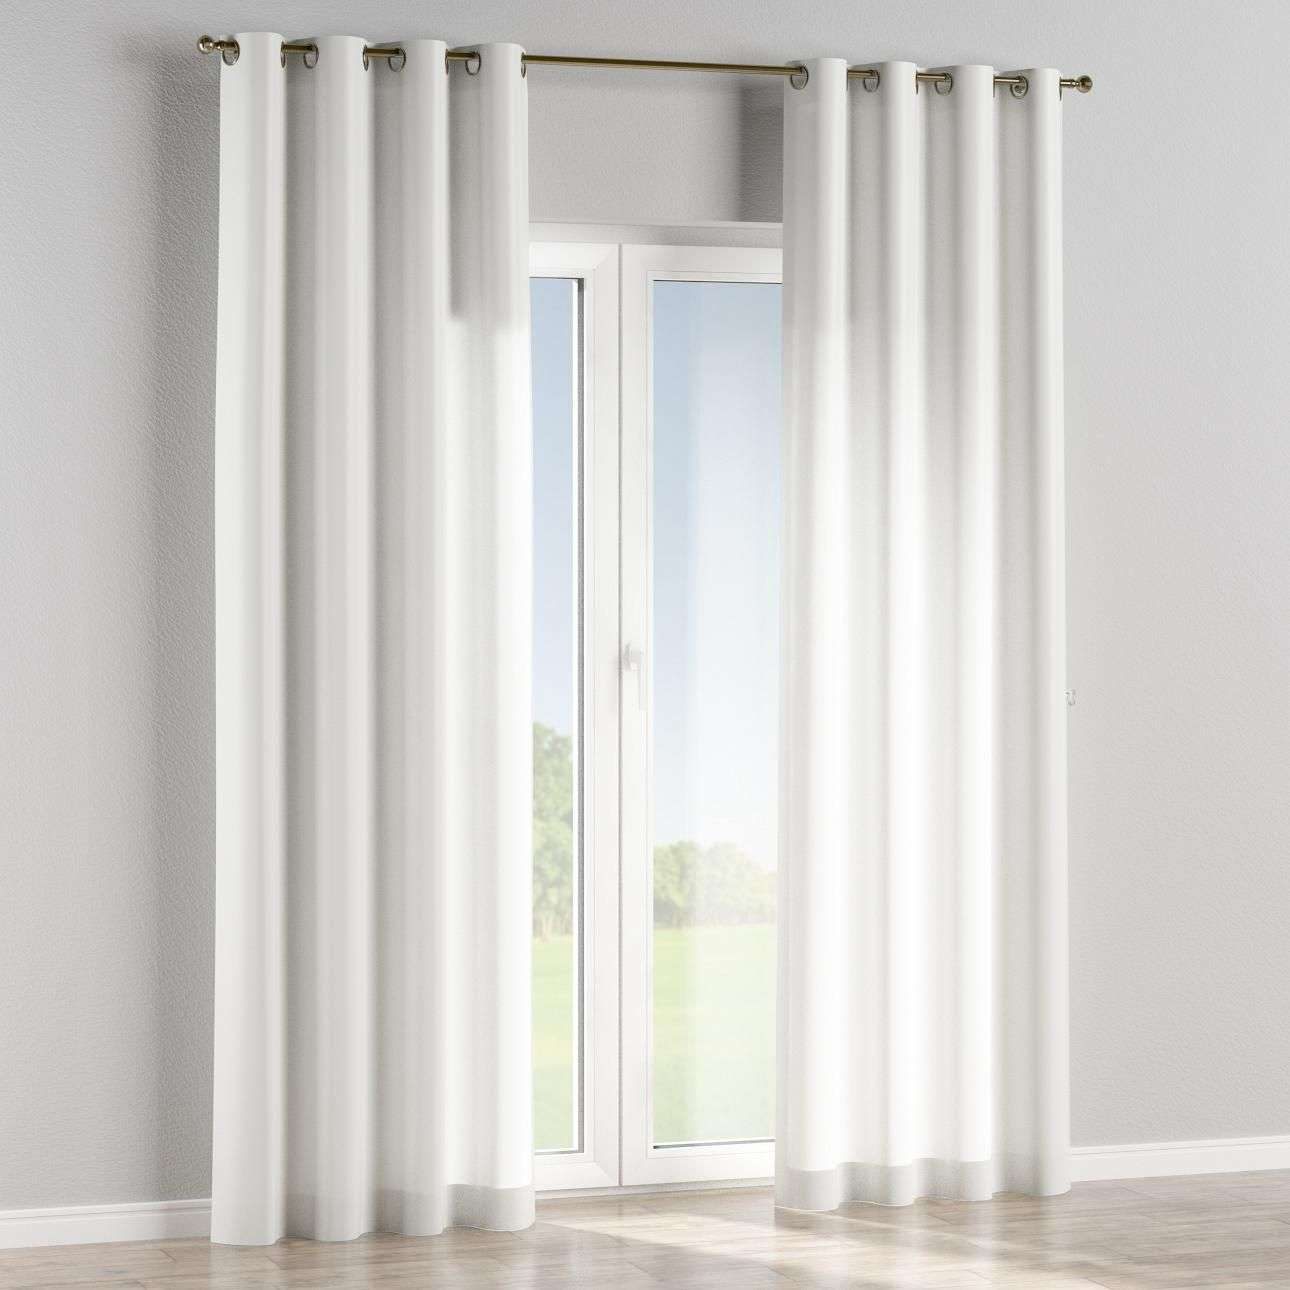 Eyelet lined curtains in collection Rustica, fabric: 140-85